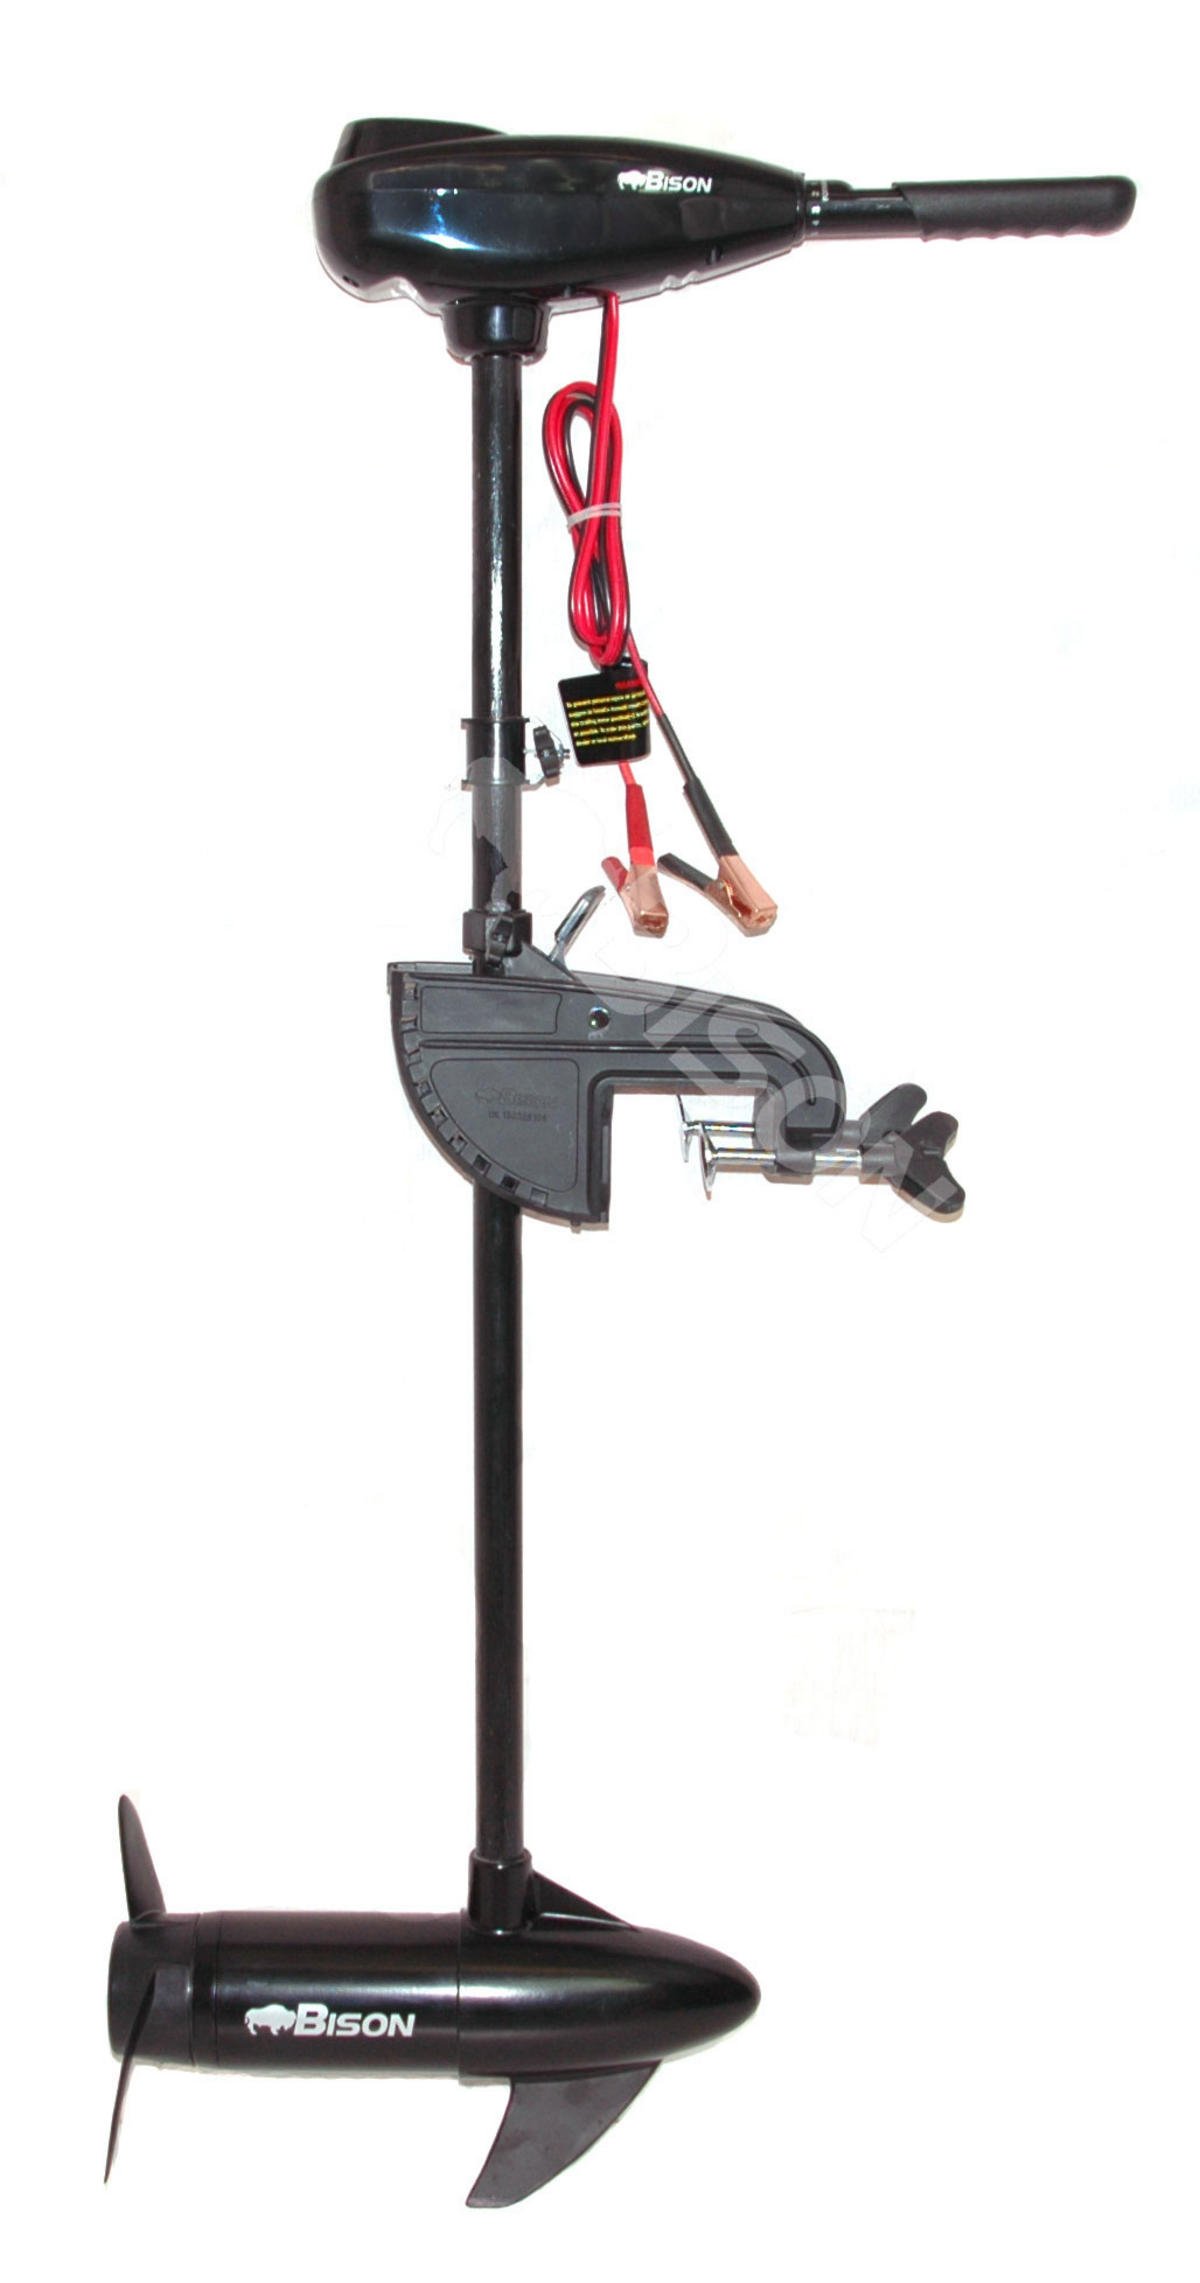 BISON 86 ft/lb ELECTRIC SALT WATER OUTBOARD MOTOR